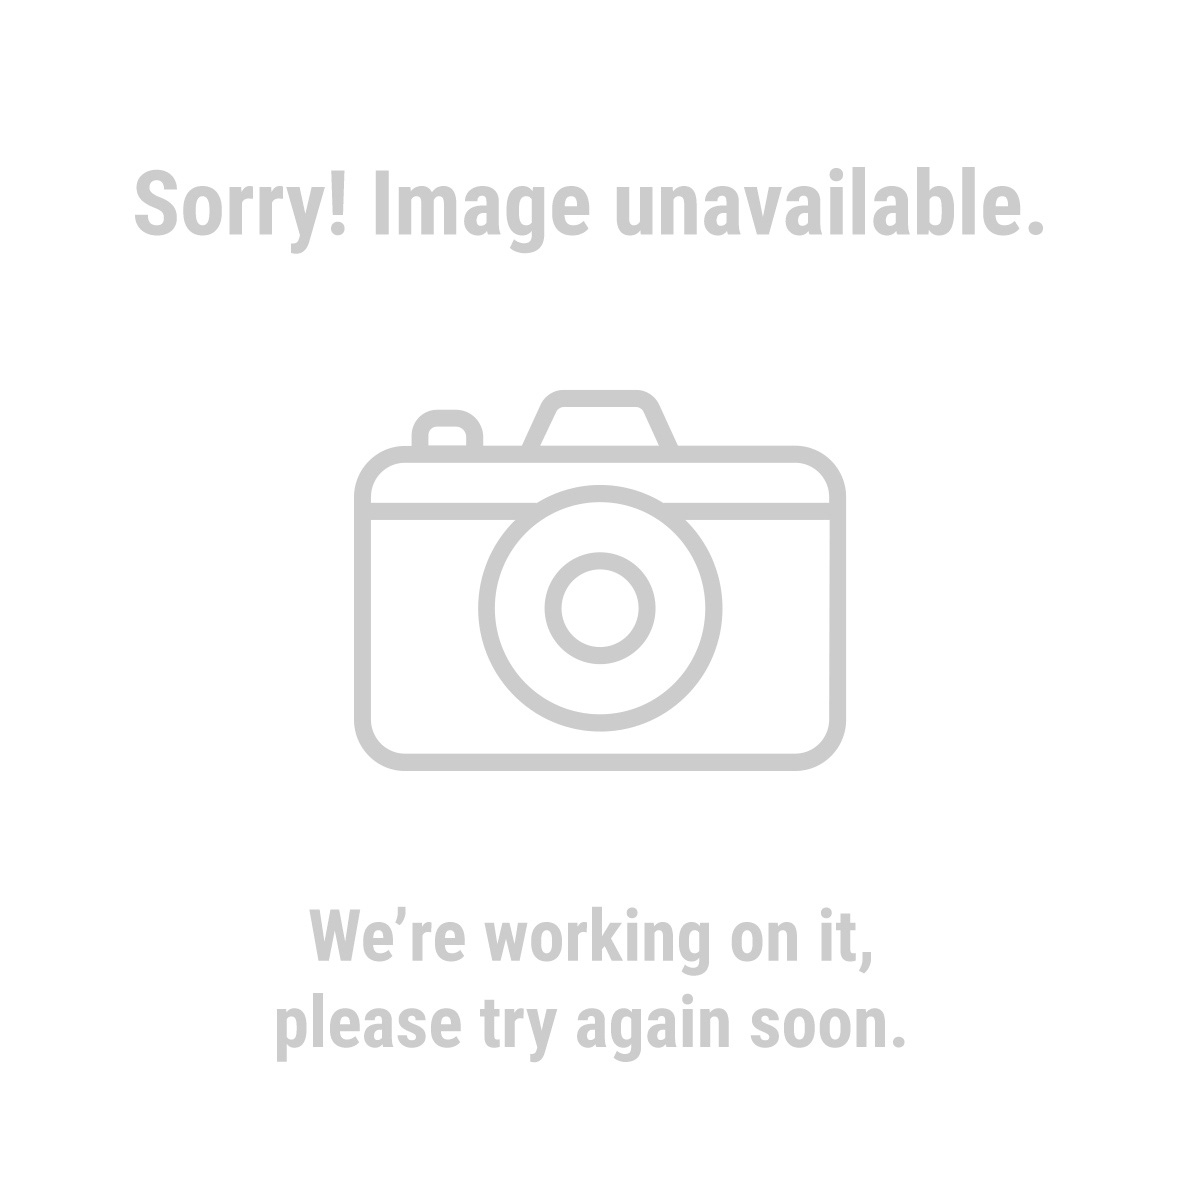 Western Safety 66376 Nylon Knit Gloves with Nitrile Palms, X-Large